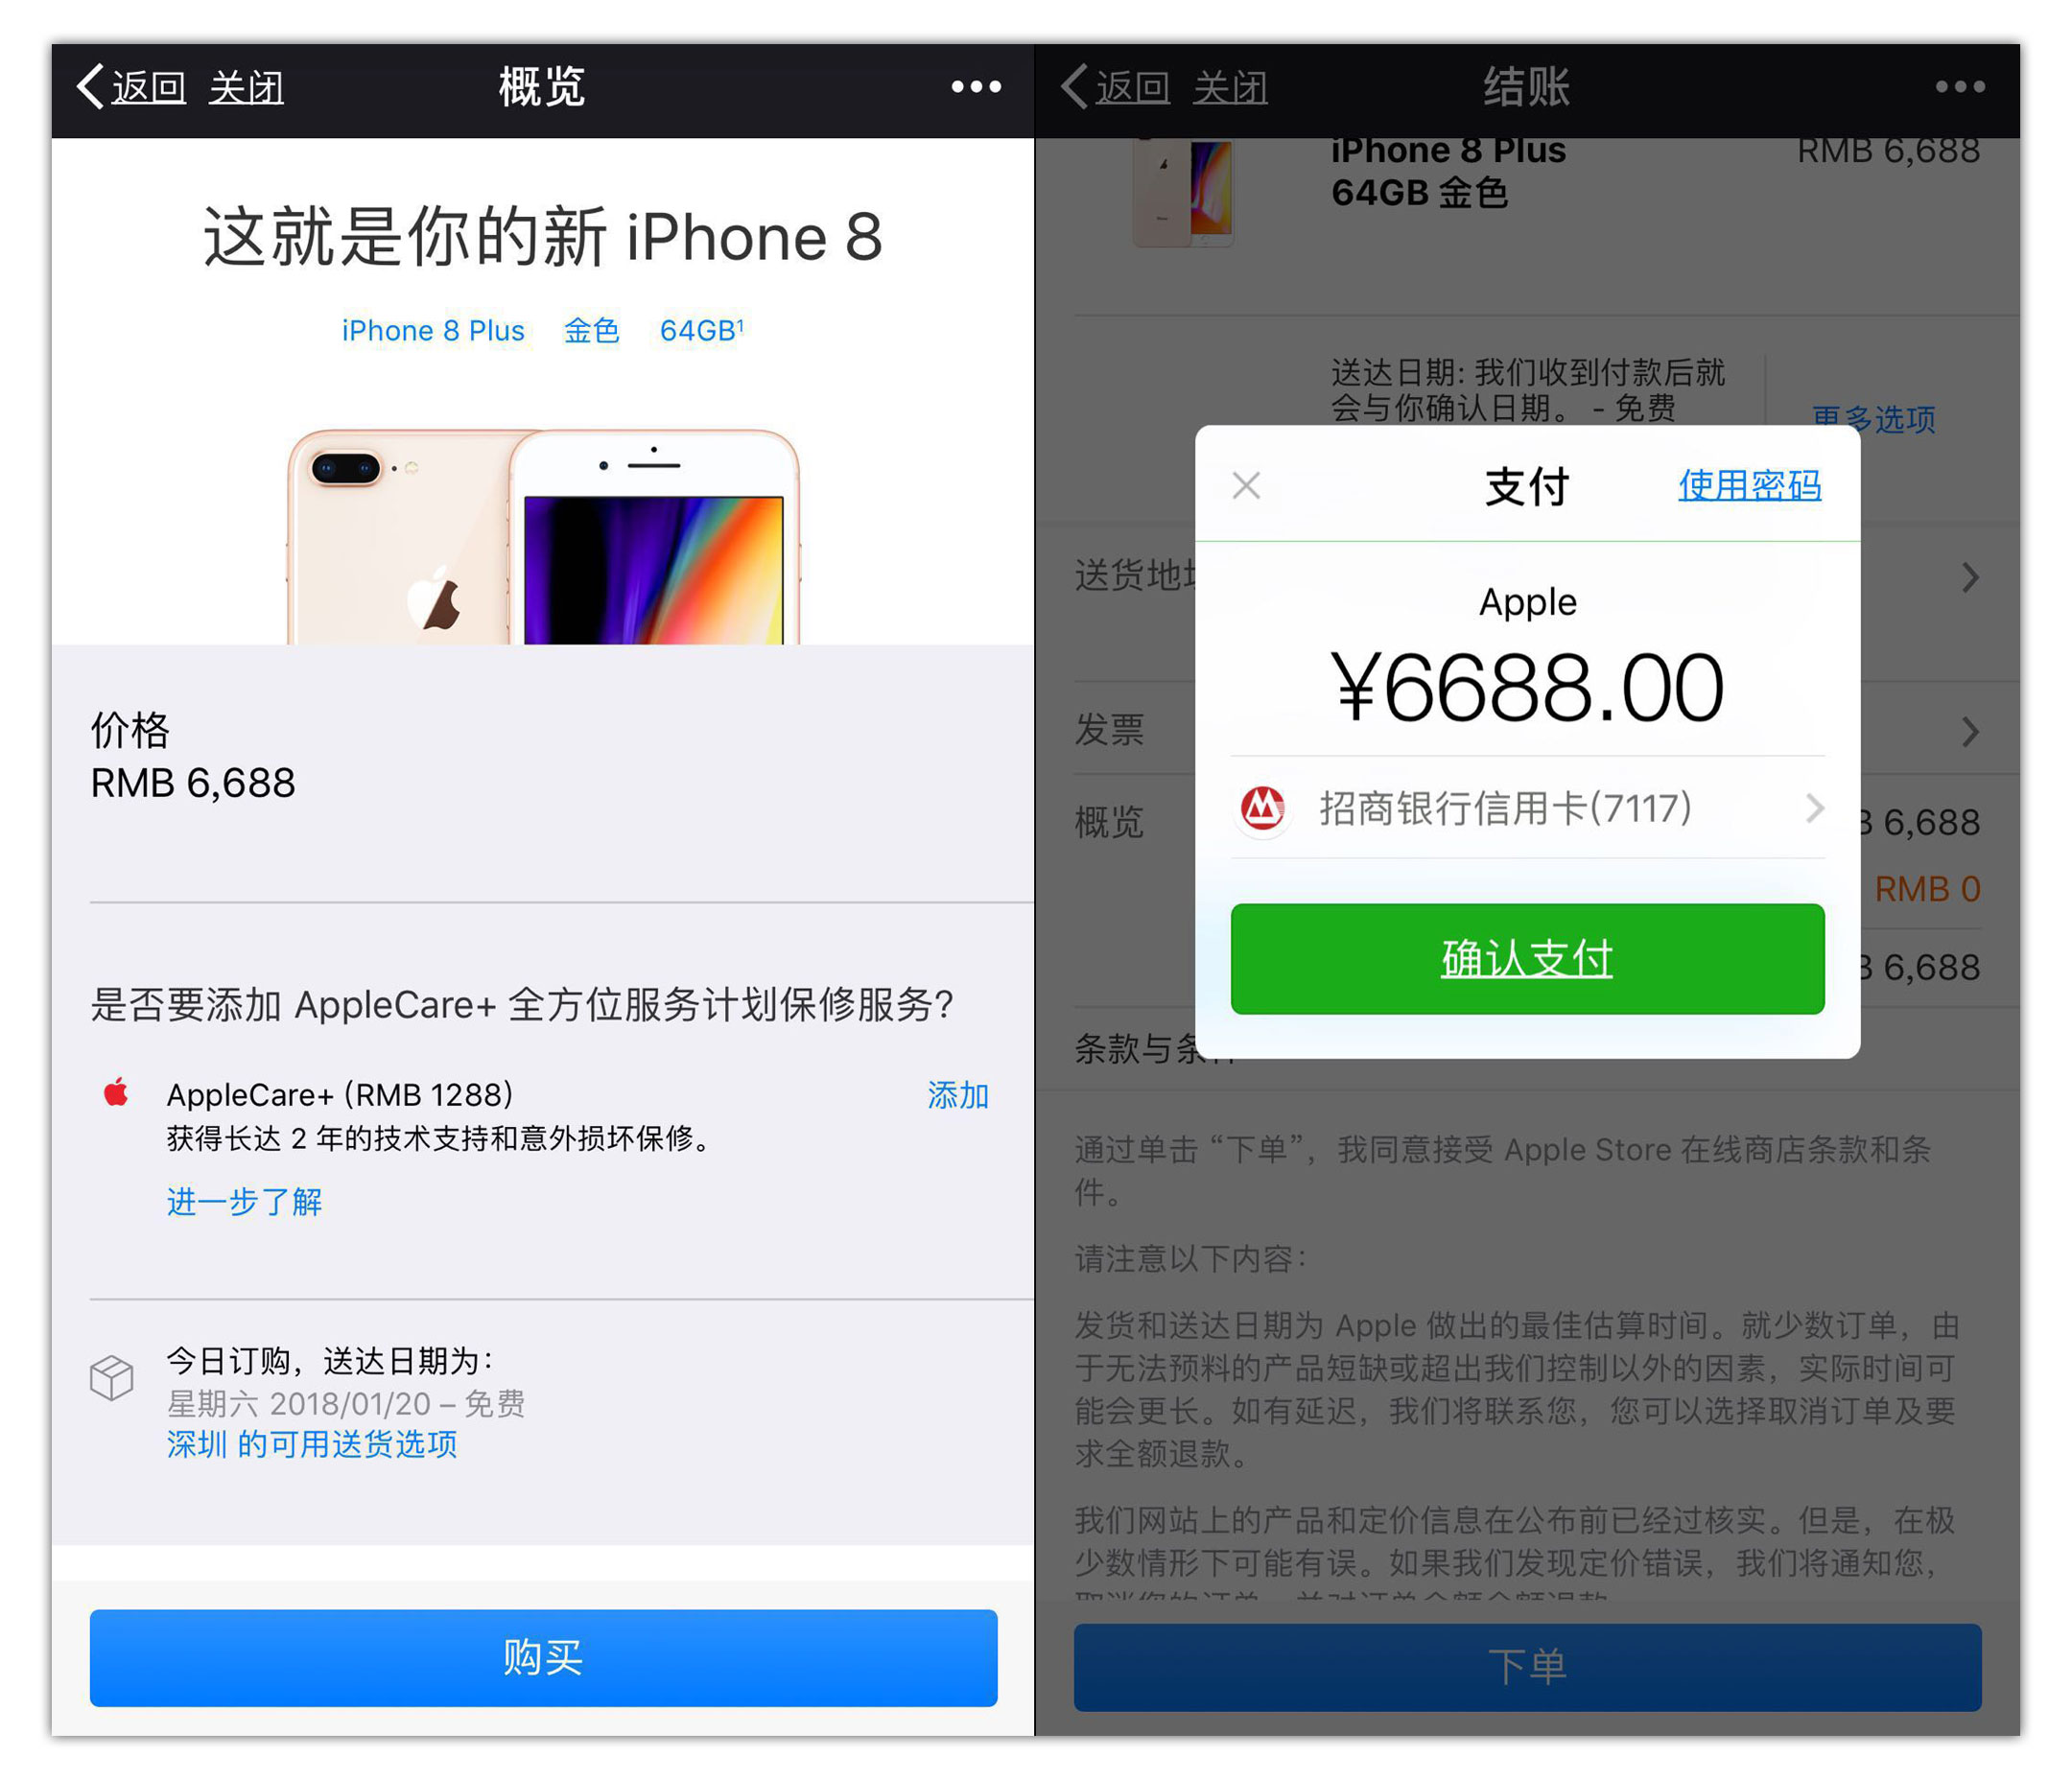 Buying iPhone on WeChat